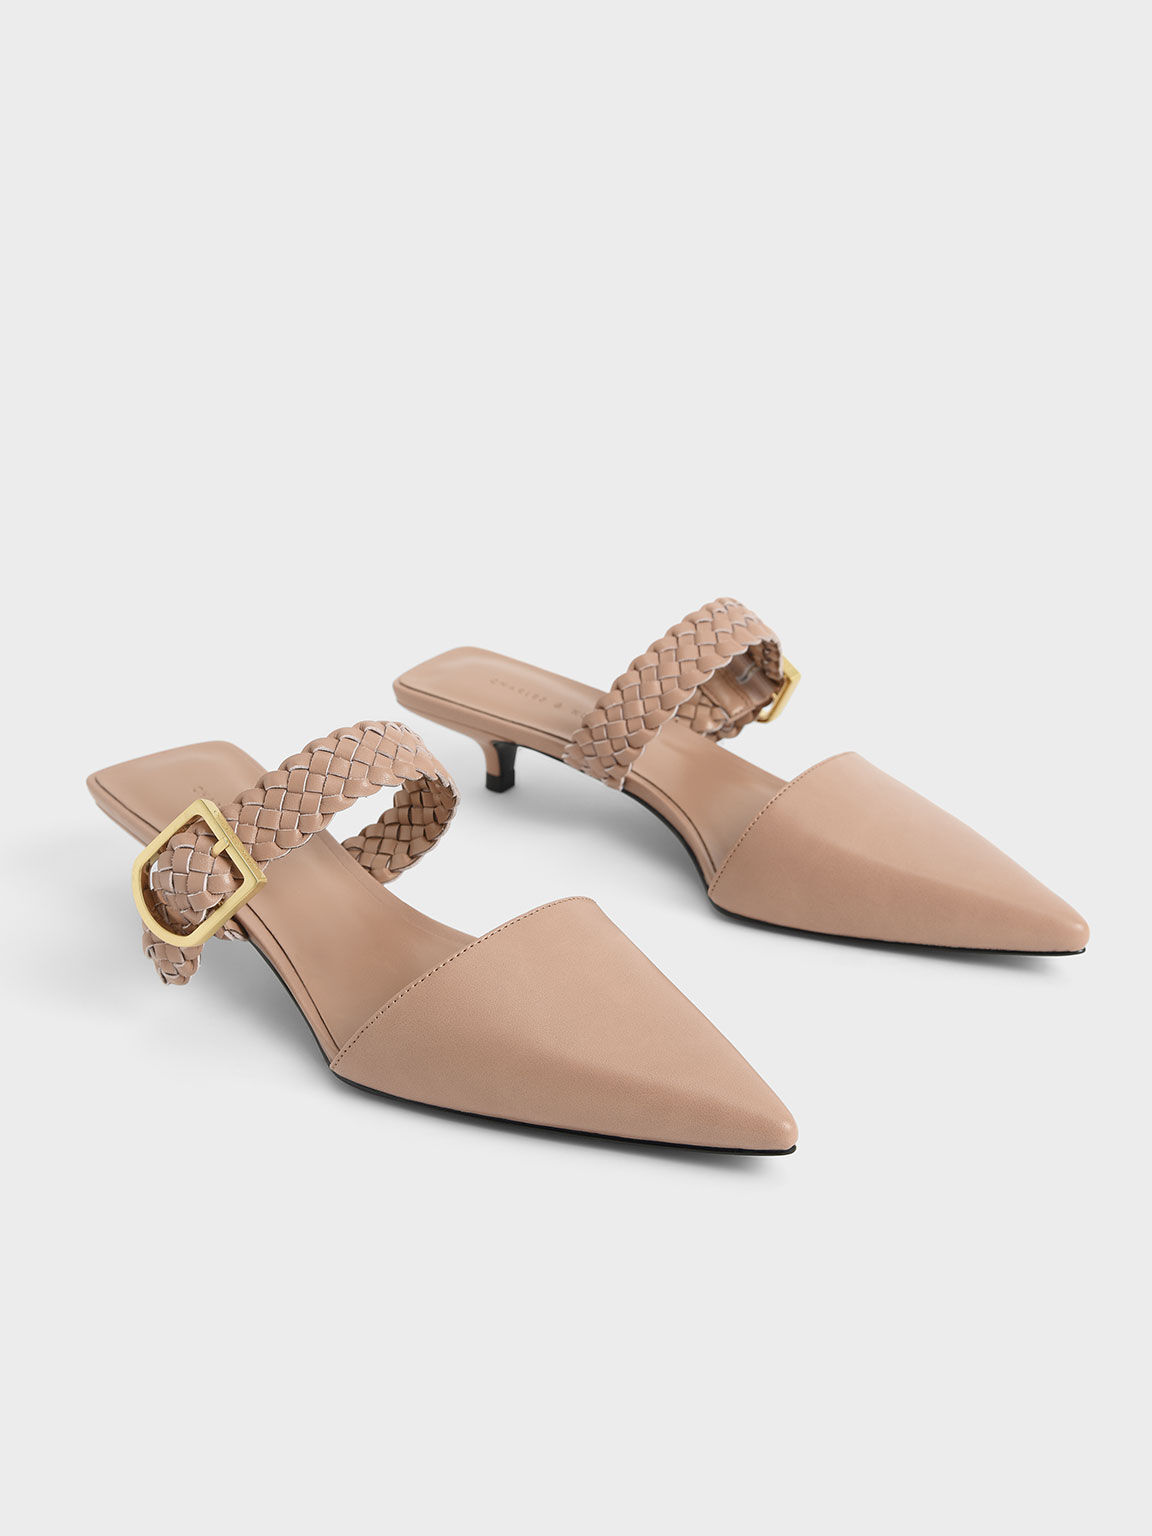 Woven Buckle Strap Mules, Pink, hi-res